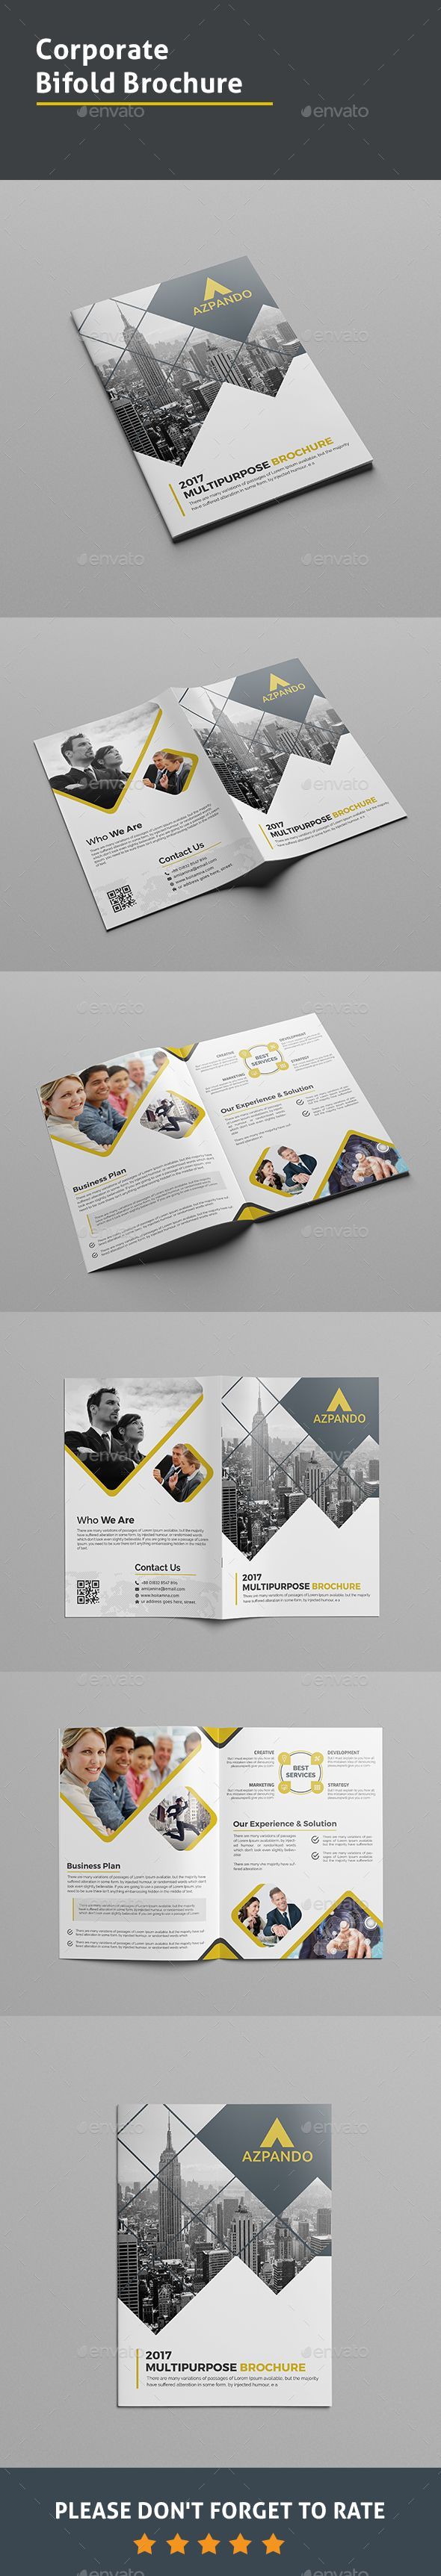 Corporate Bi-fold Brochure Template PSD. Download here: graphicprime.com/...